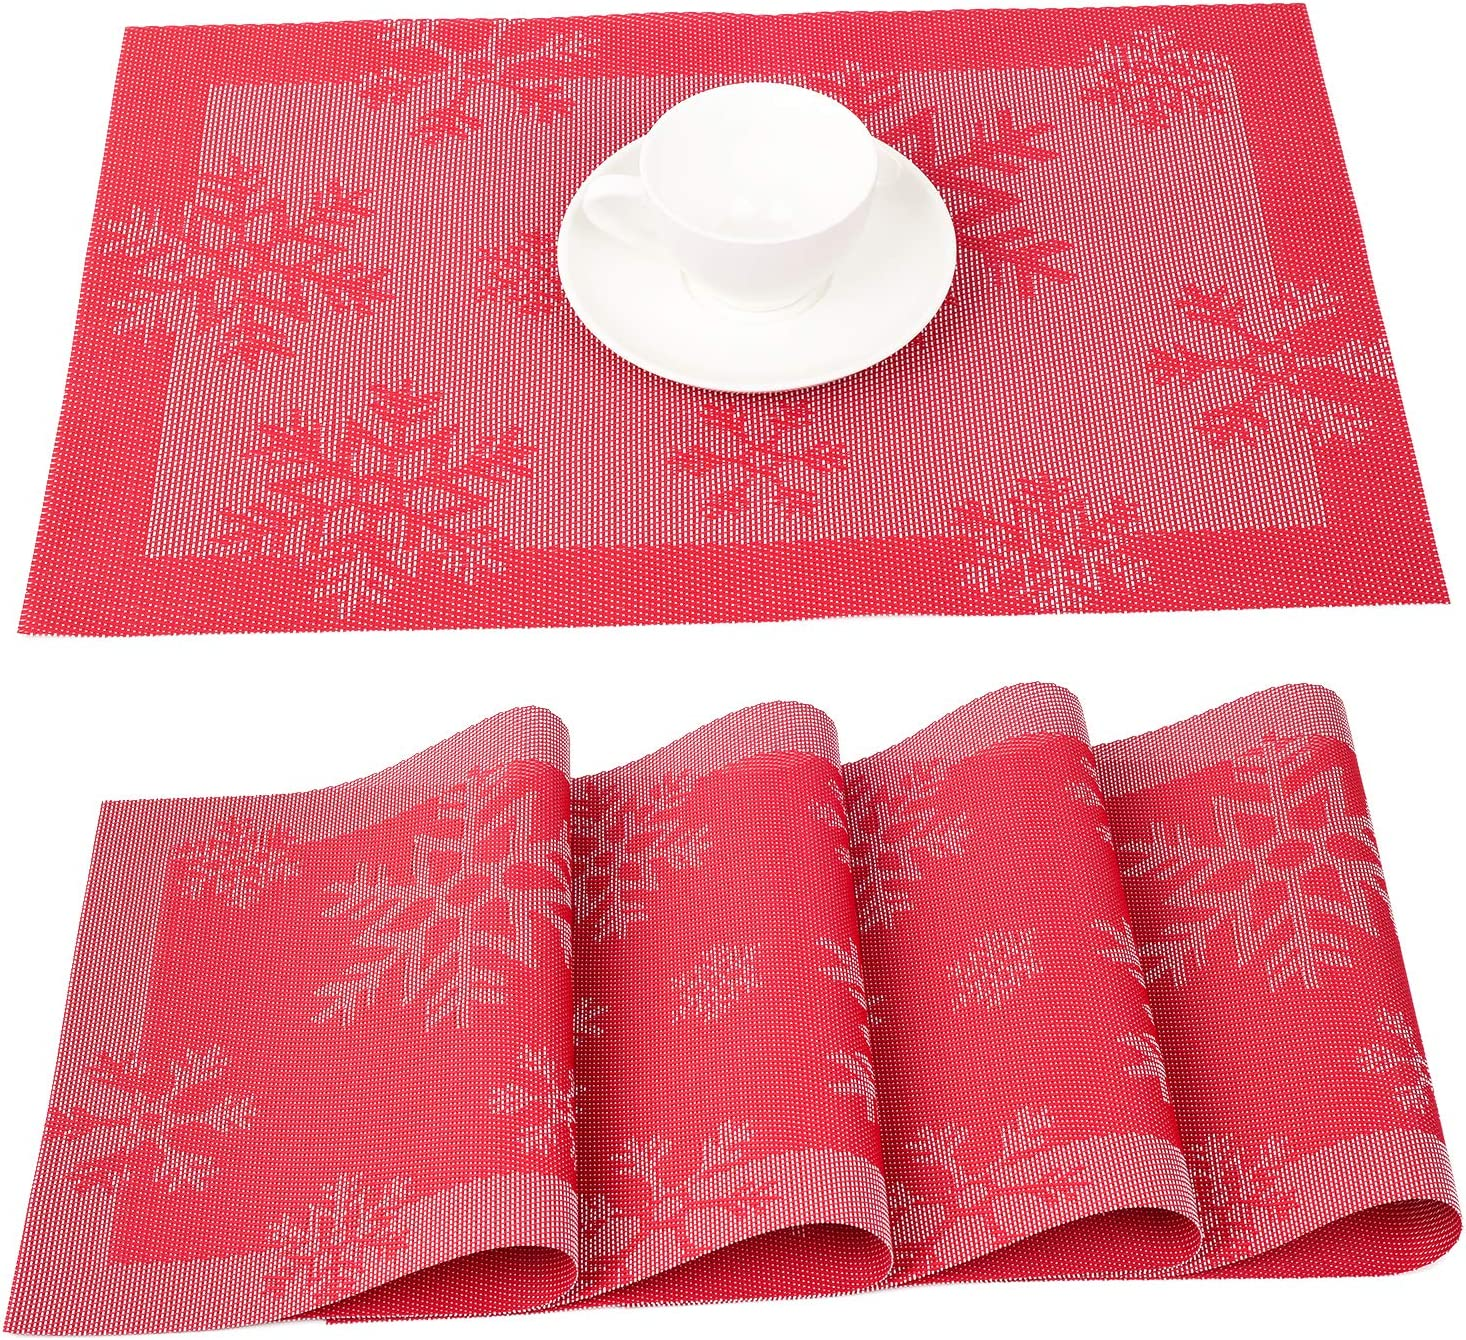 Lvydec Christmas Placemat, Set of 4 Red Placemats for Dining Table, Heat-Resistant and Washable for Holiday Table Decoration (Snowflake)